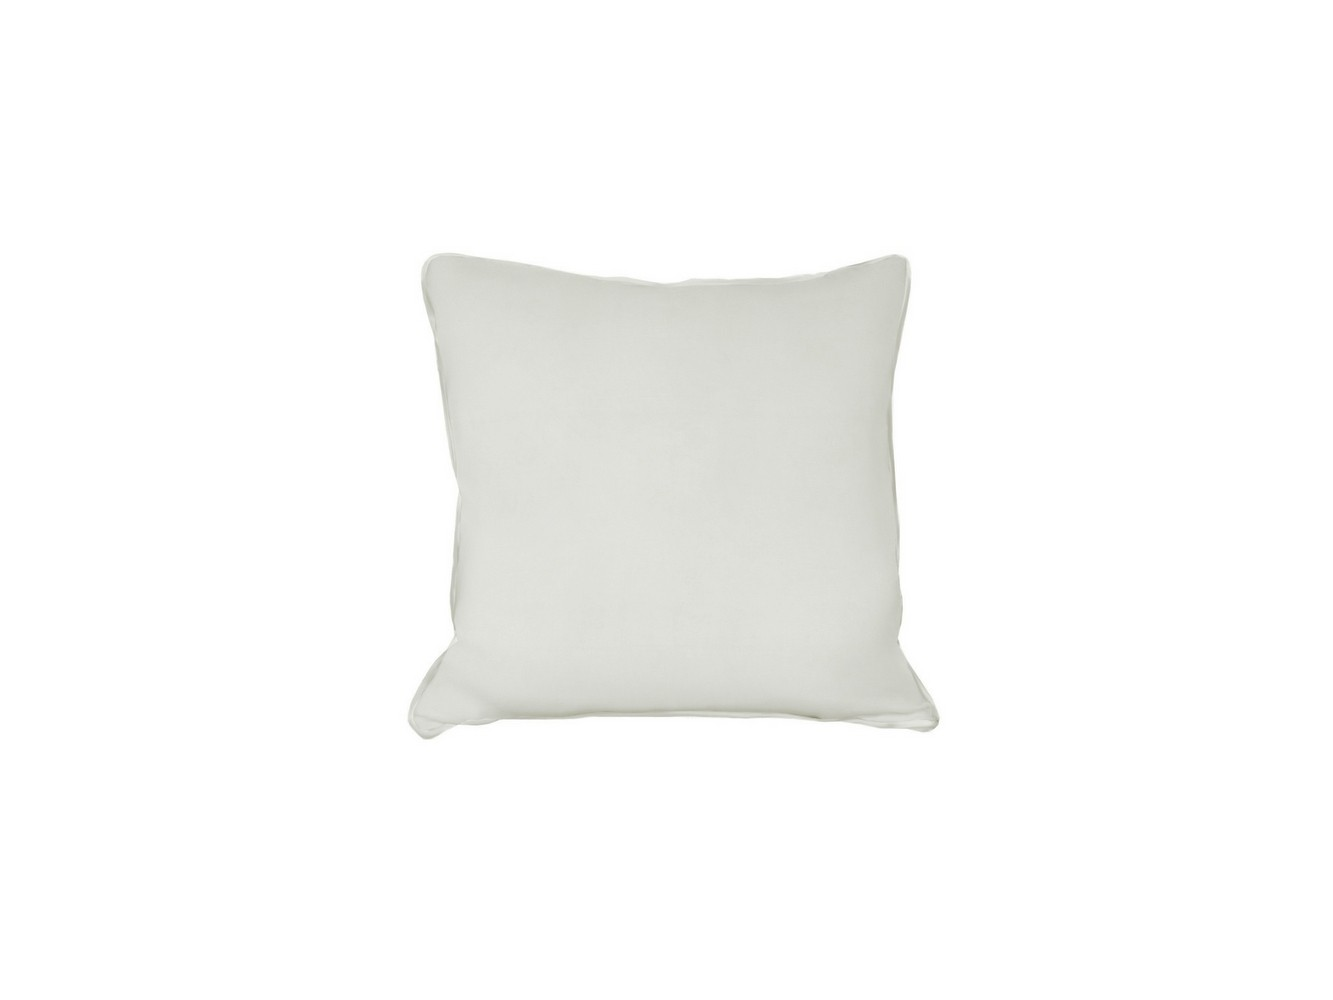 Extra Scatter Cushions - Fabric Rice Pudding